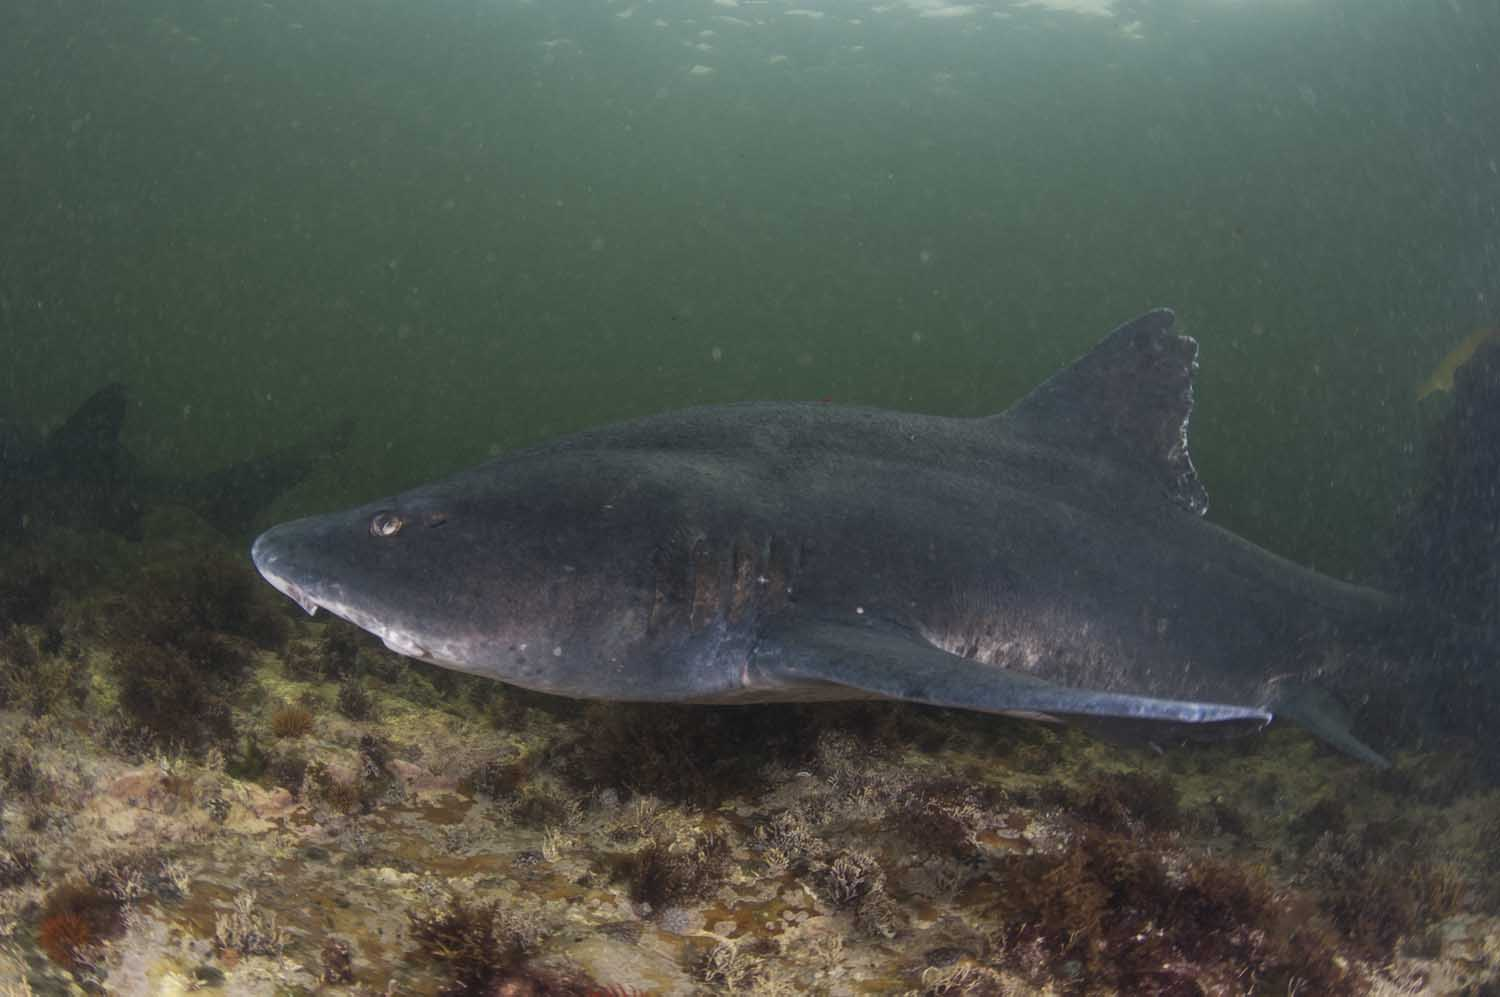 Gully sharks lurk in the shallows, coming out to feed on octopus and crustaceans at night (Steve Benjamin)